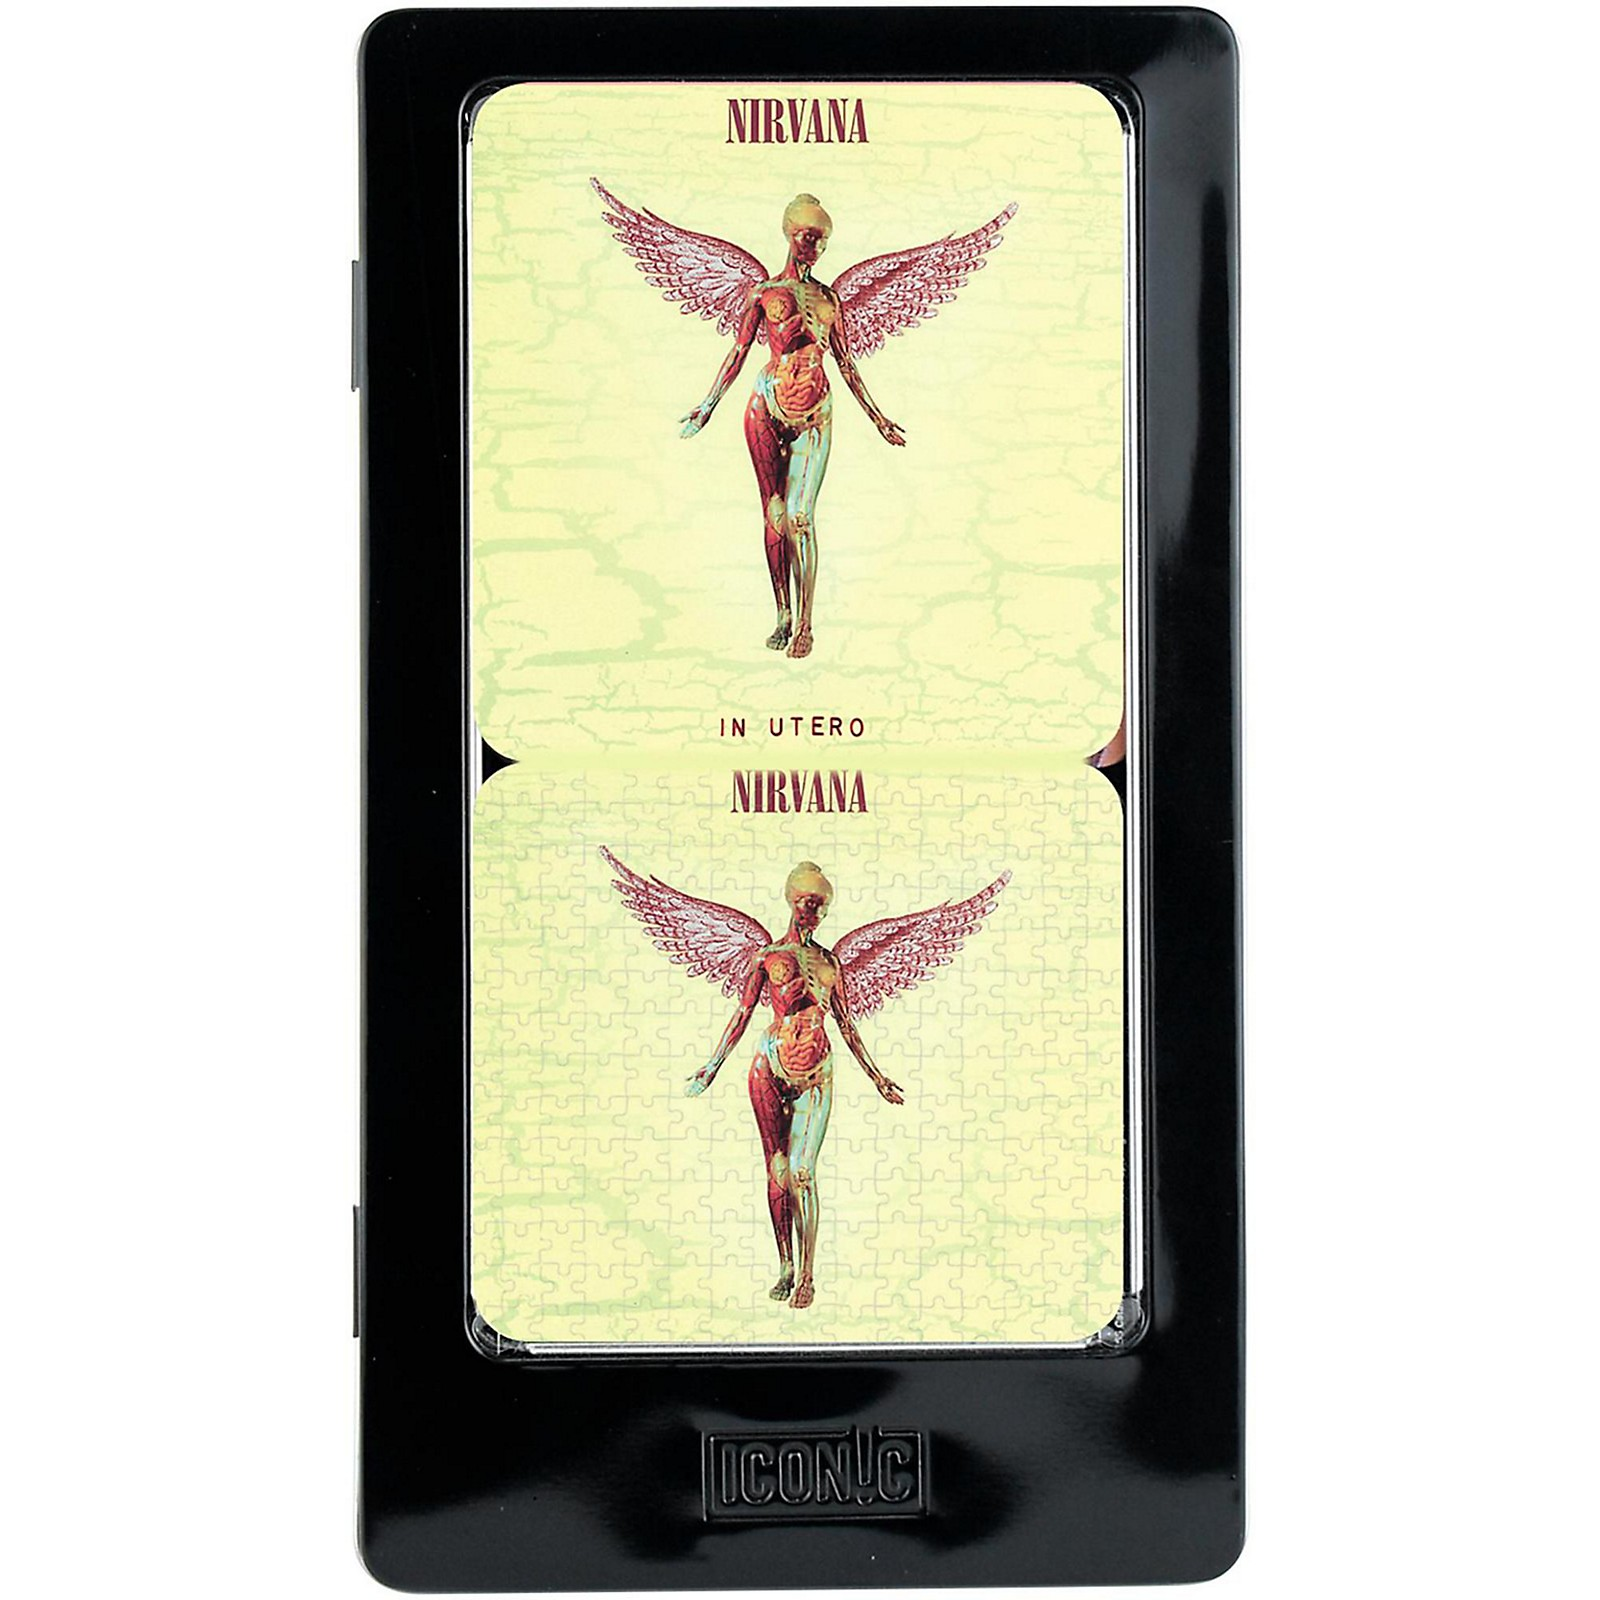 Iconic Concepts Nirvana In Utero Metal Coaster Set with Cork Backs in Tin Gift Box